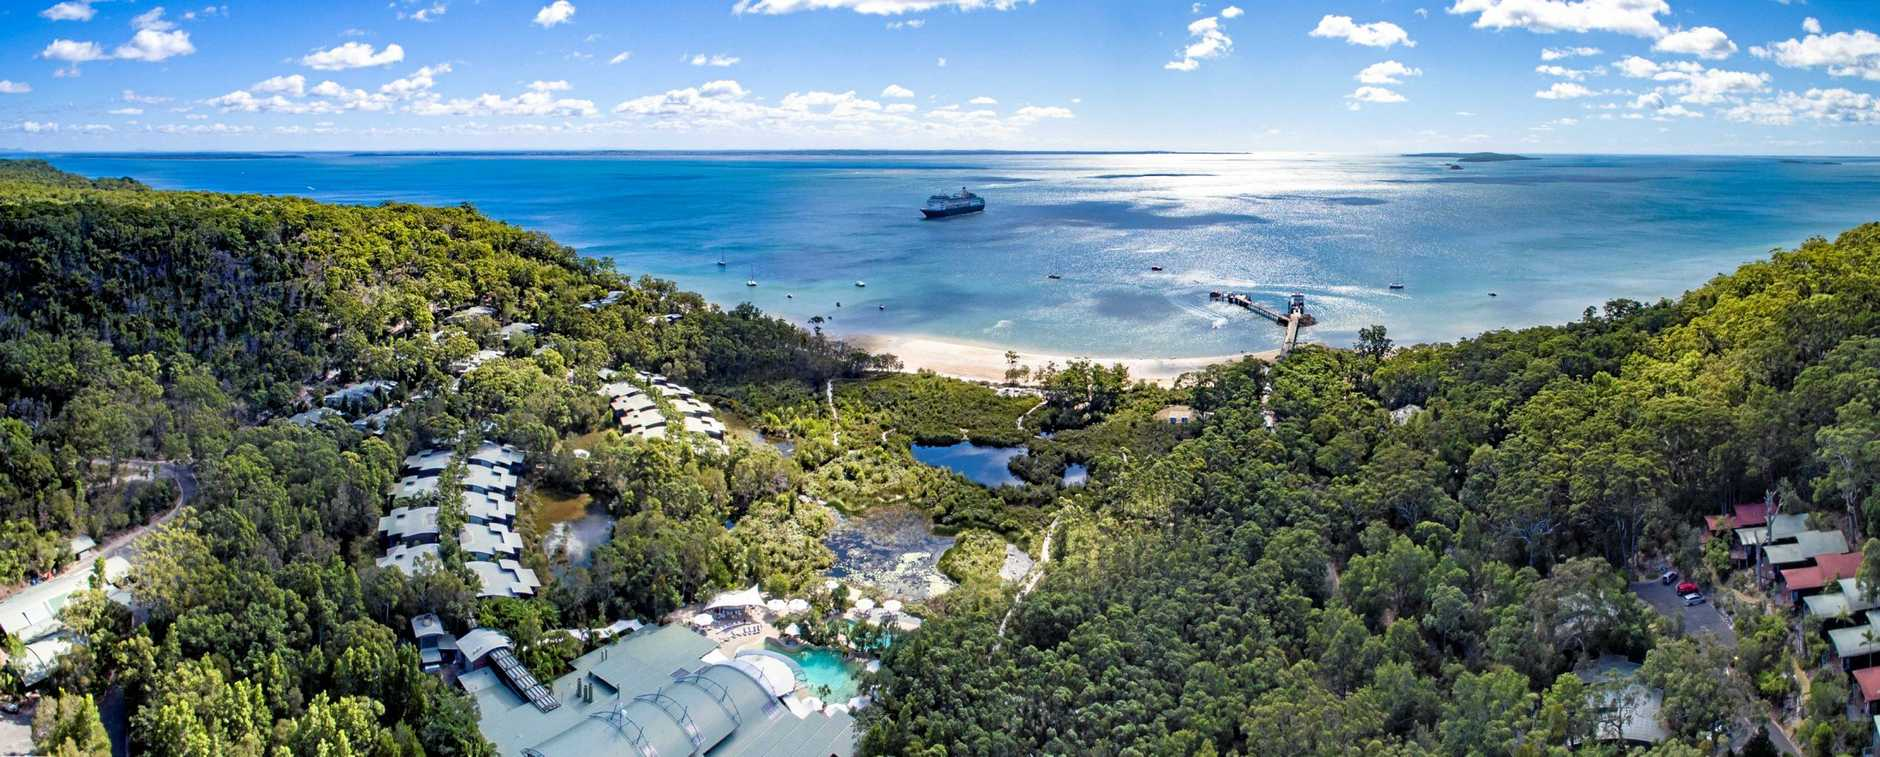 CAREER OPPORTUNITIES: The Kingfisher Bay Resort has a once in a life time vacancy to work and live on Fraser Island.